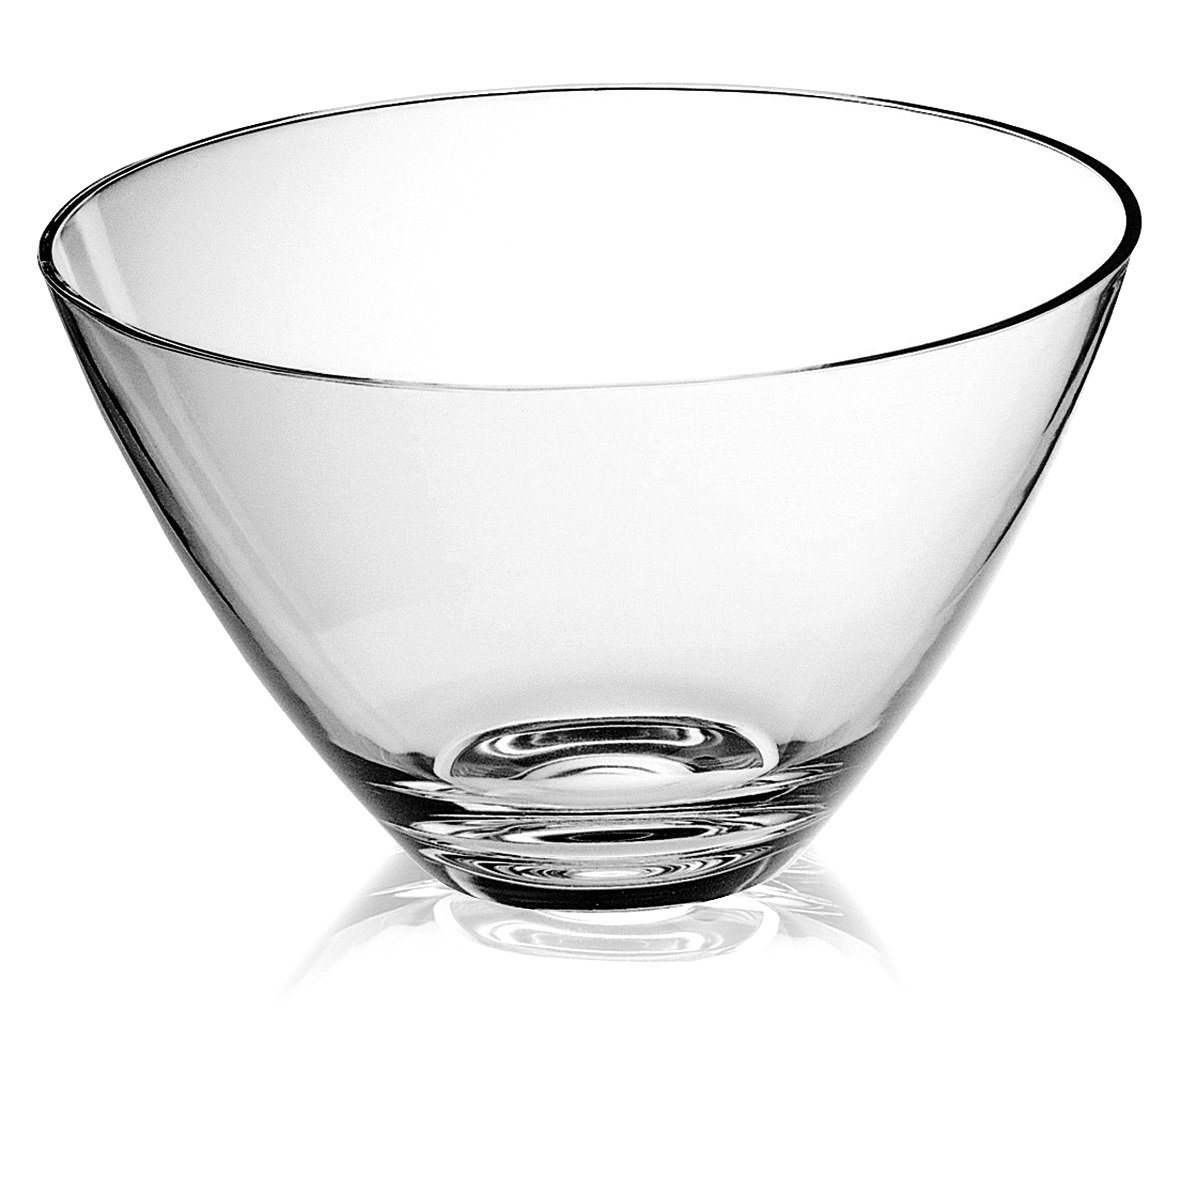 Majestic Gifts High Quality European Glass Bowls (Set of 6), 4.75/Small, Clear 4.75/Small AE60046-S6